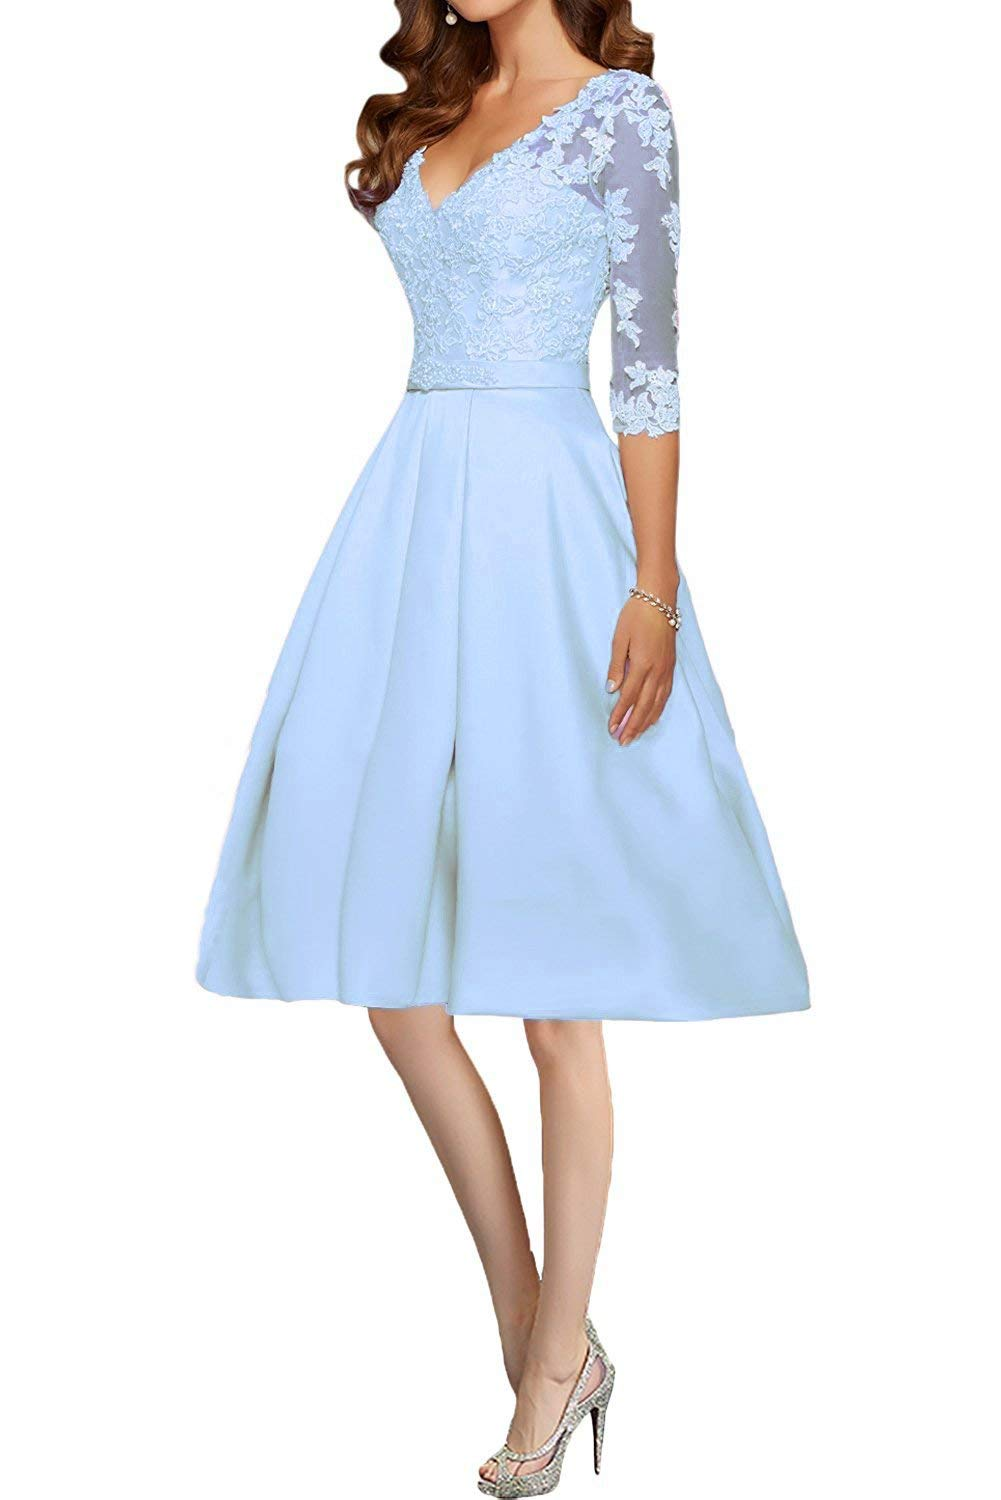 7be5b07581c Scarisee Women s 3 4 Long Sleeves V-Neck Prom Homecoming Dresses Lace  Appliqued Beaded Cocktail Evening Party Gowns Sky Blue 10